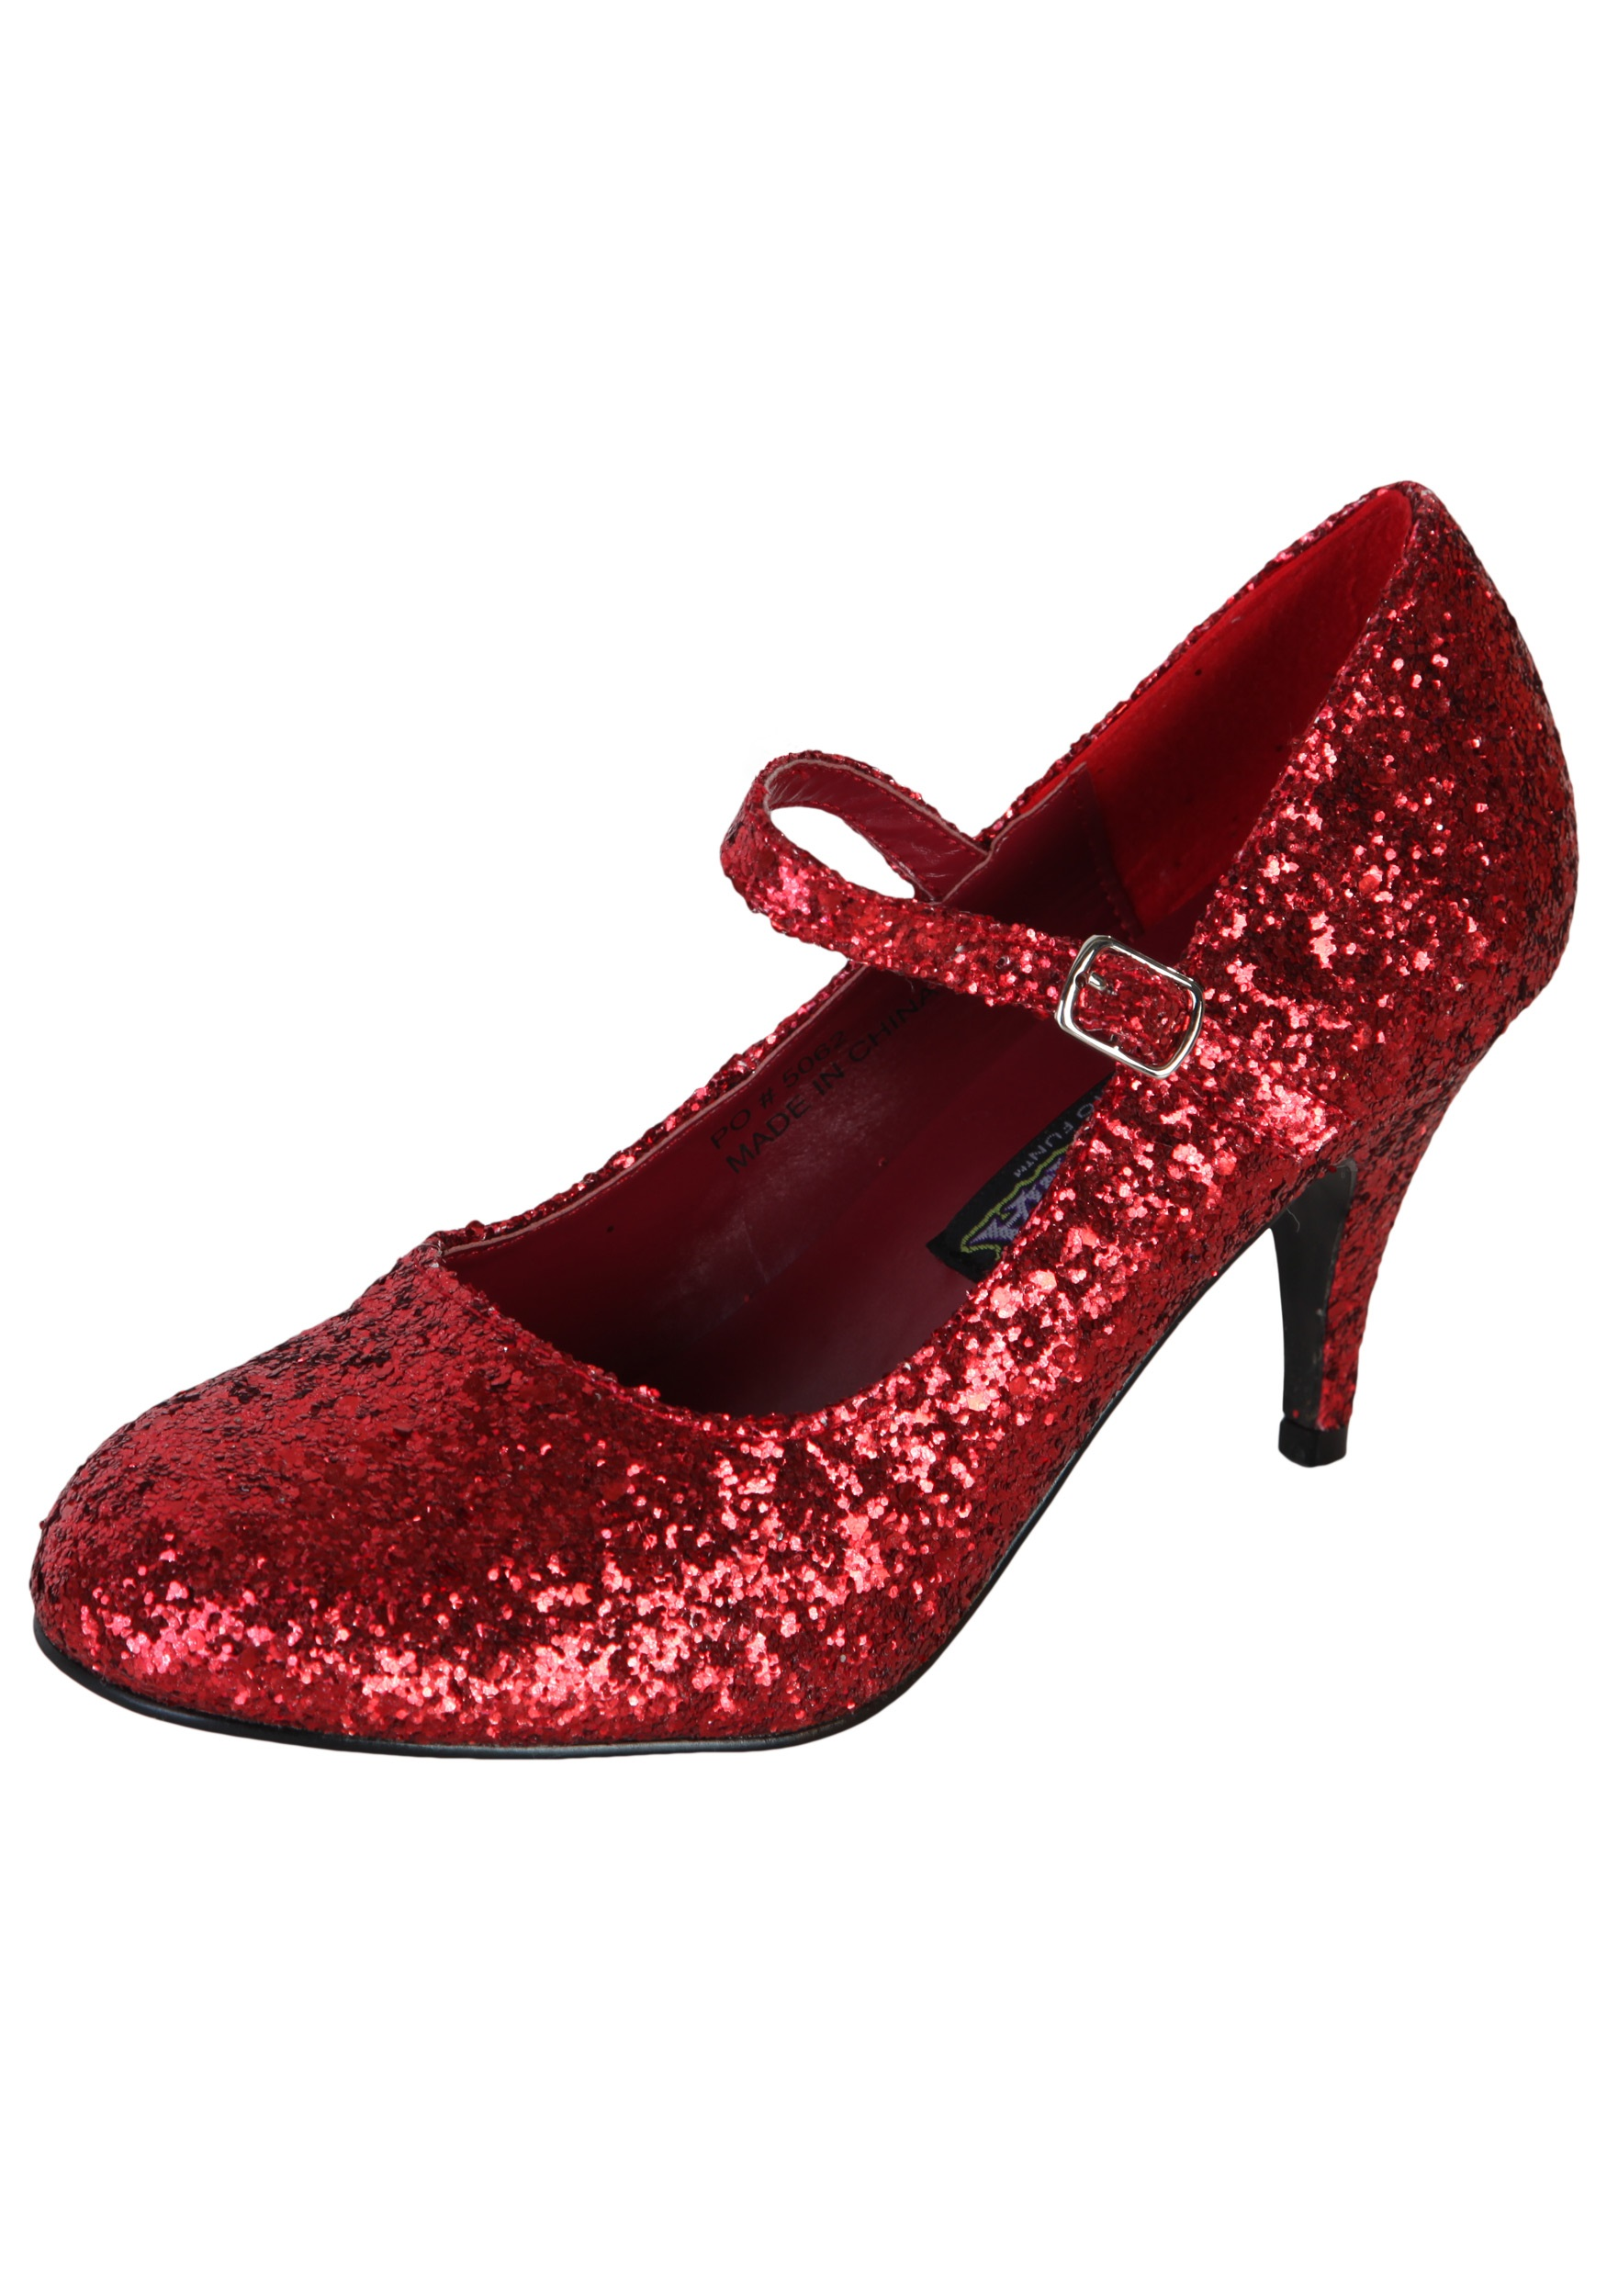 7814e9f5def Sexy Ruby Slippers